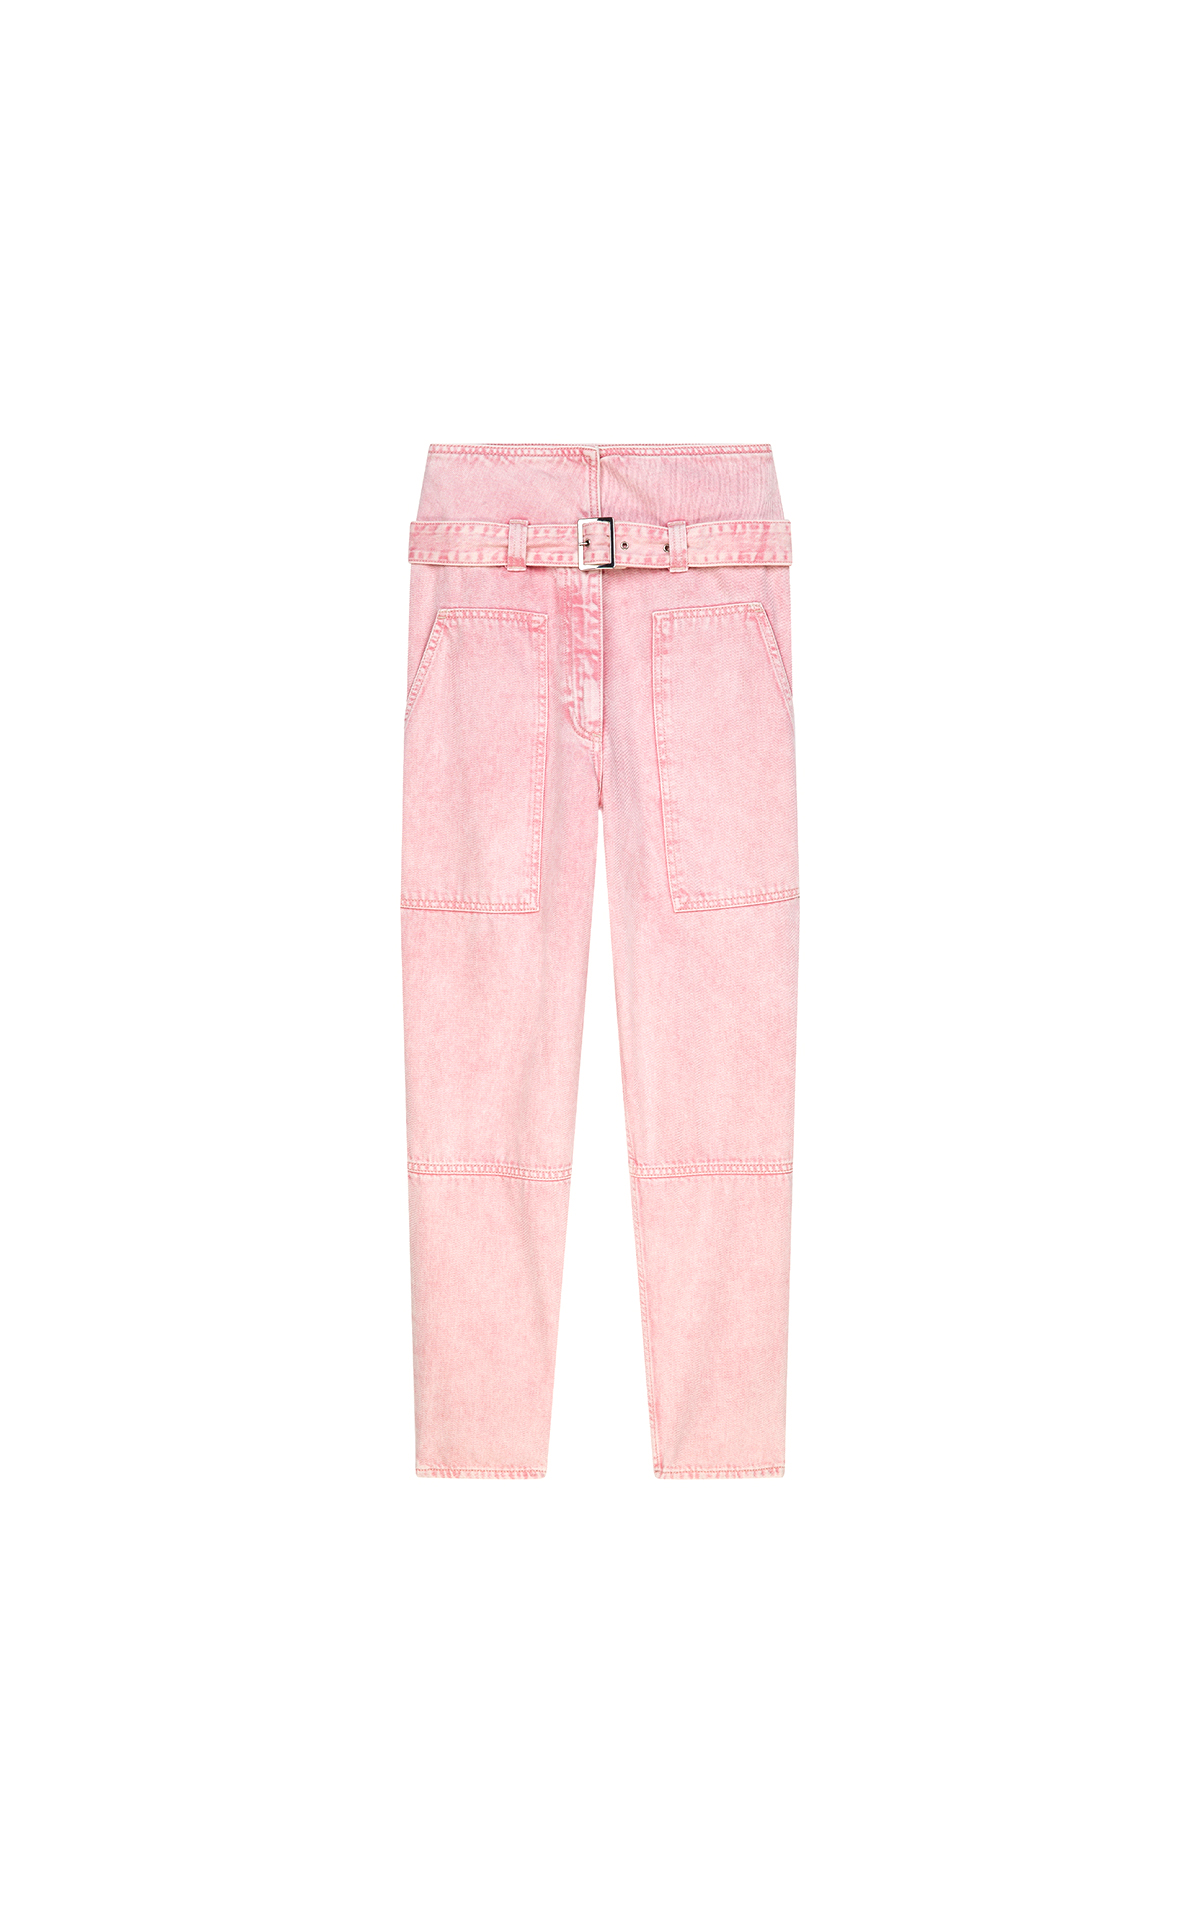 Claudie Pierlot Pantalon Paint Est La Vallée Village